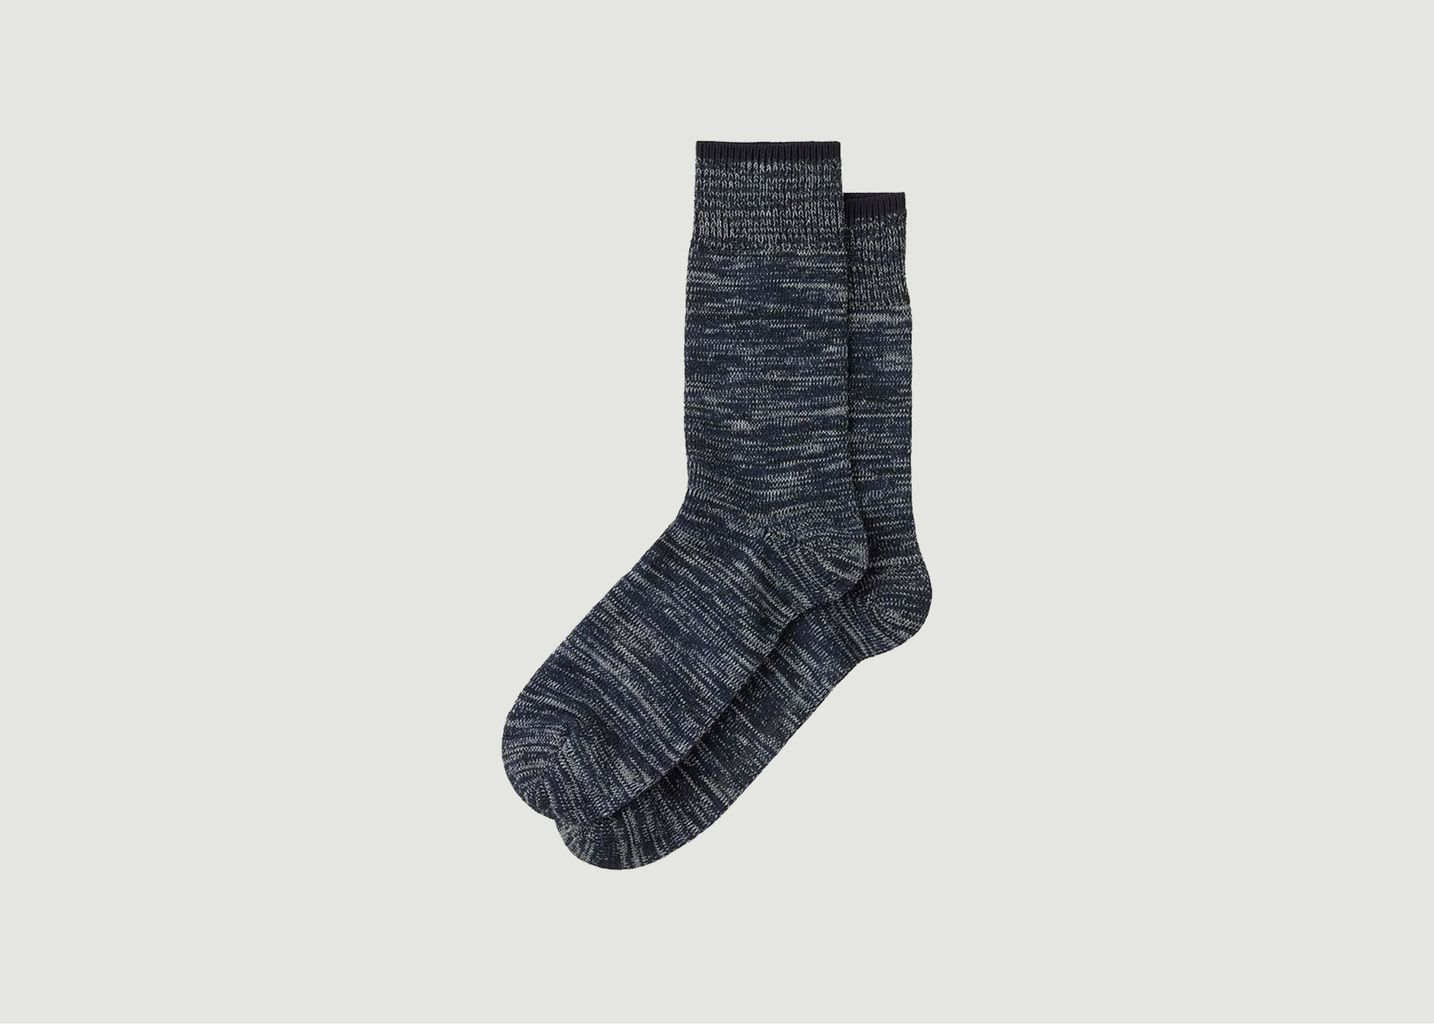 Chaussettes Rasmusson - Nudie Jeans